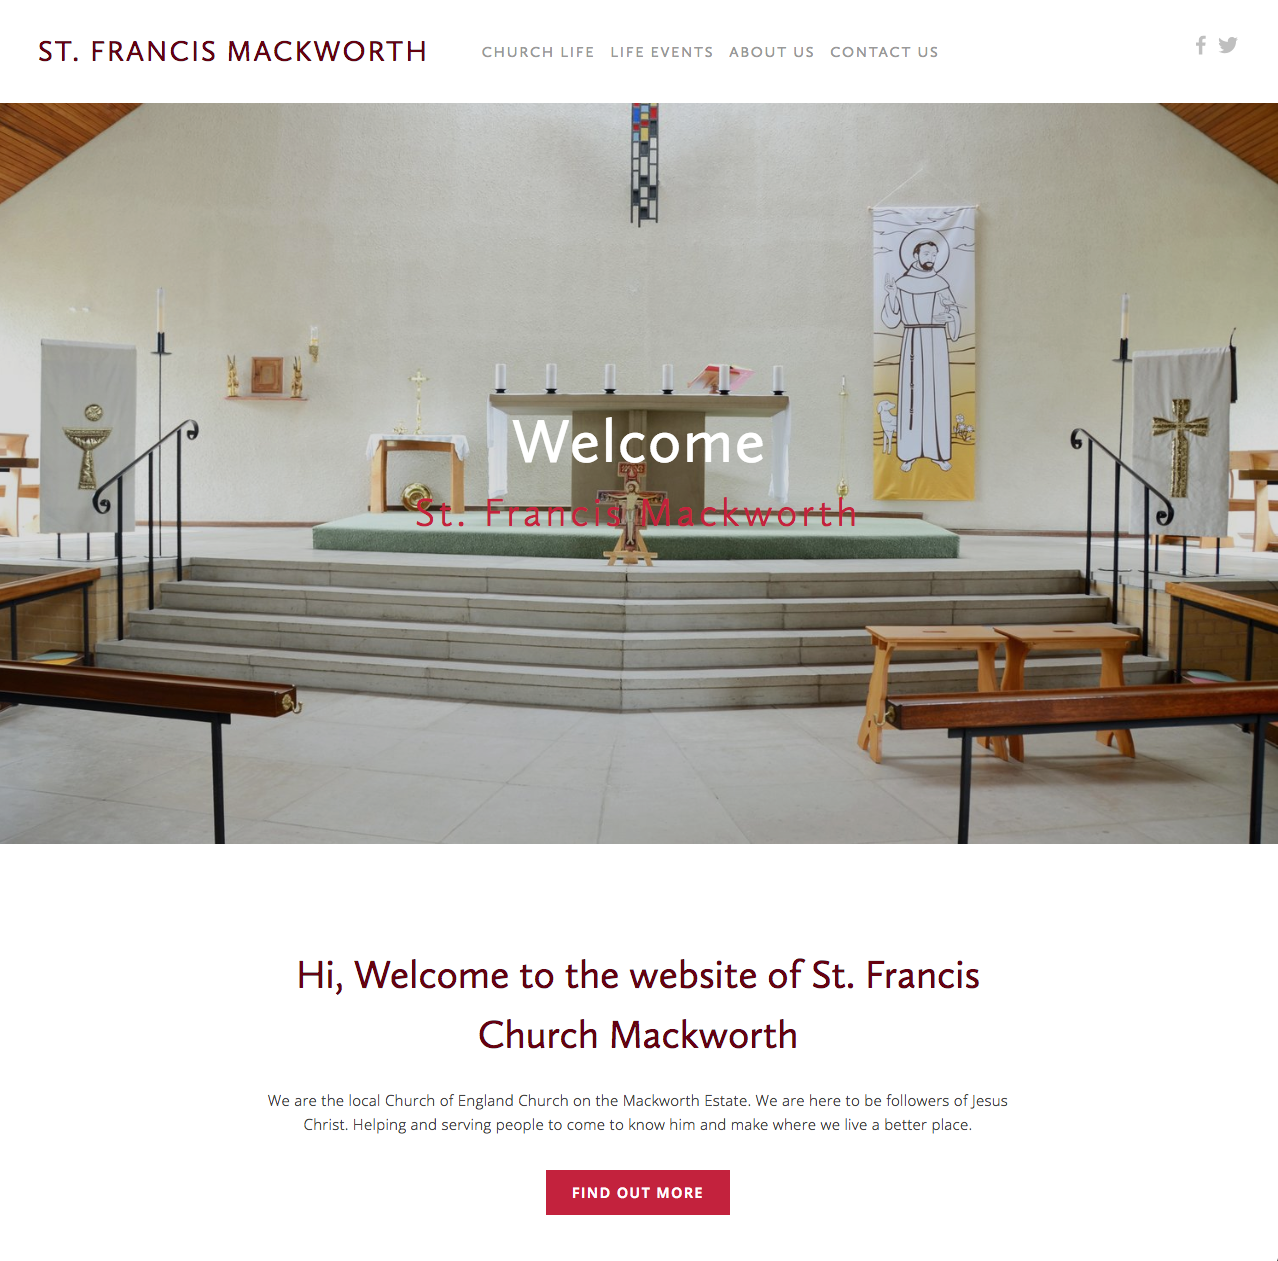 A snapshot of the homepage of the St Francis Mackworth website